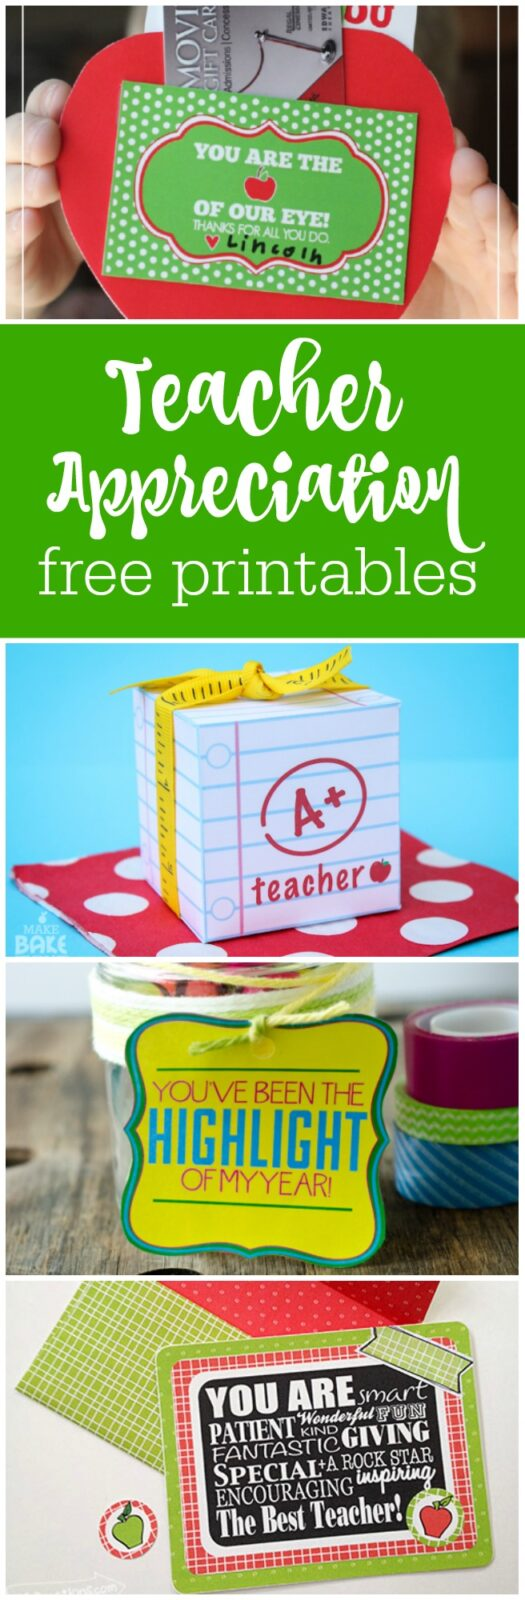 20 teacher appreciation free printables curated by The Party Teacher